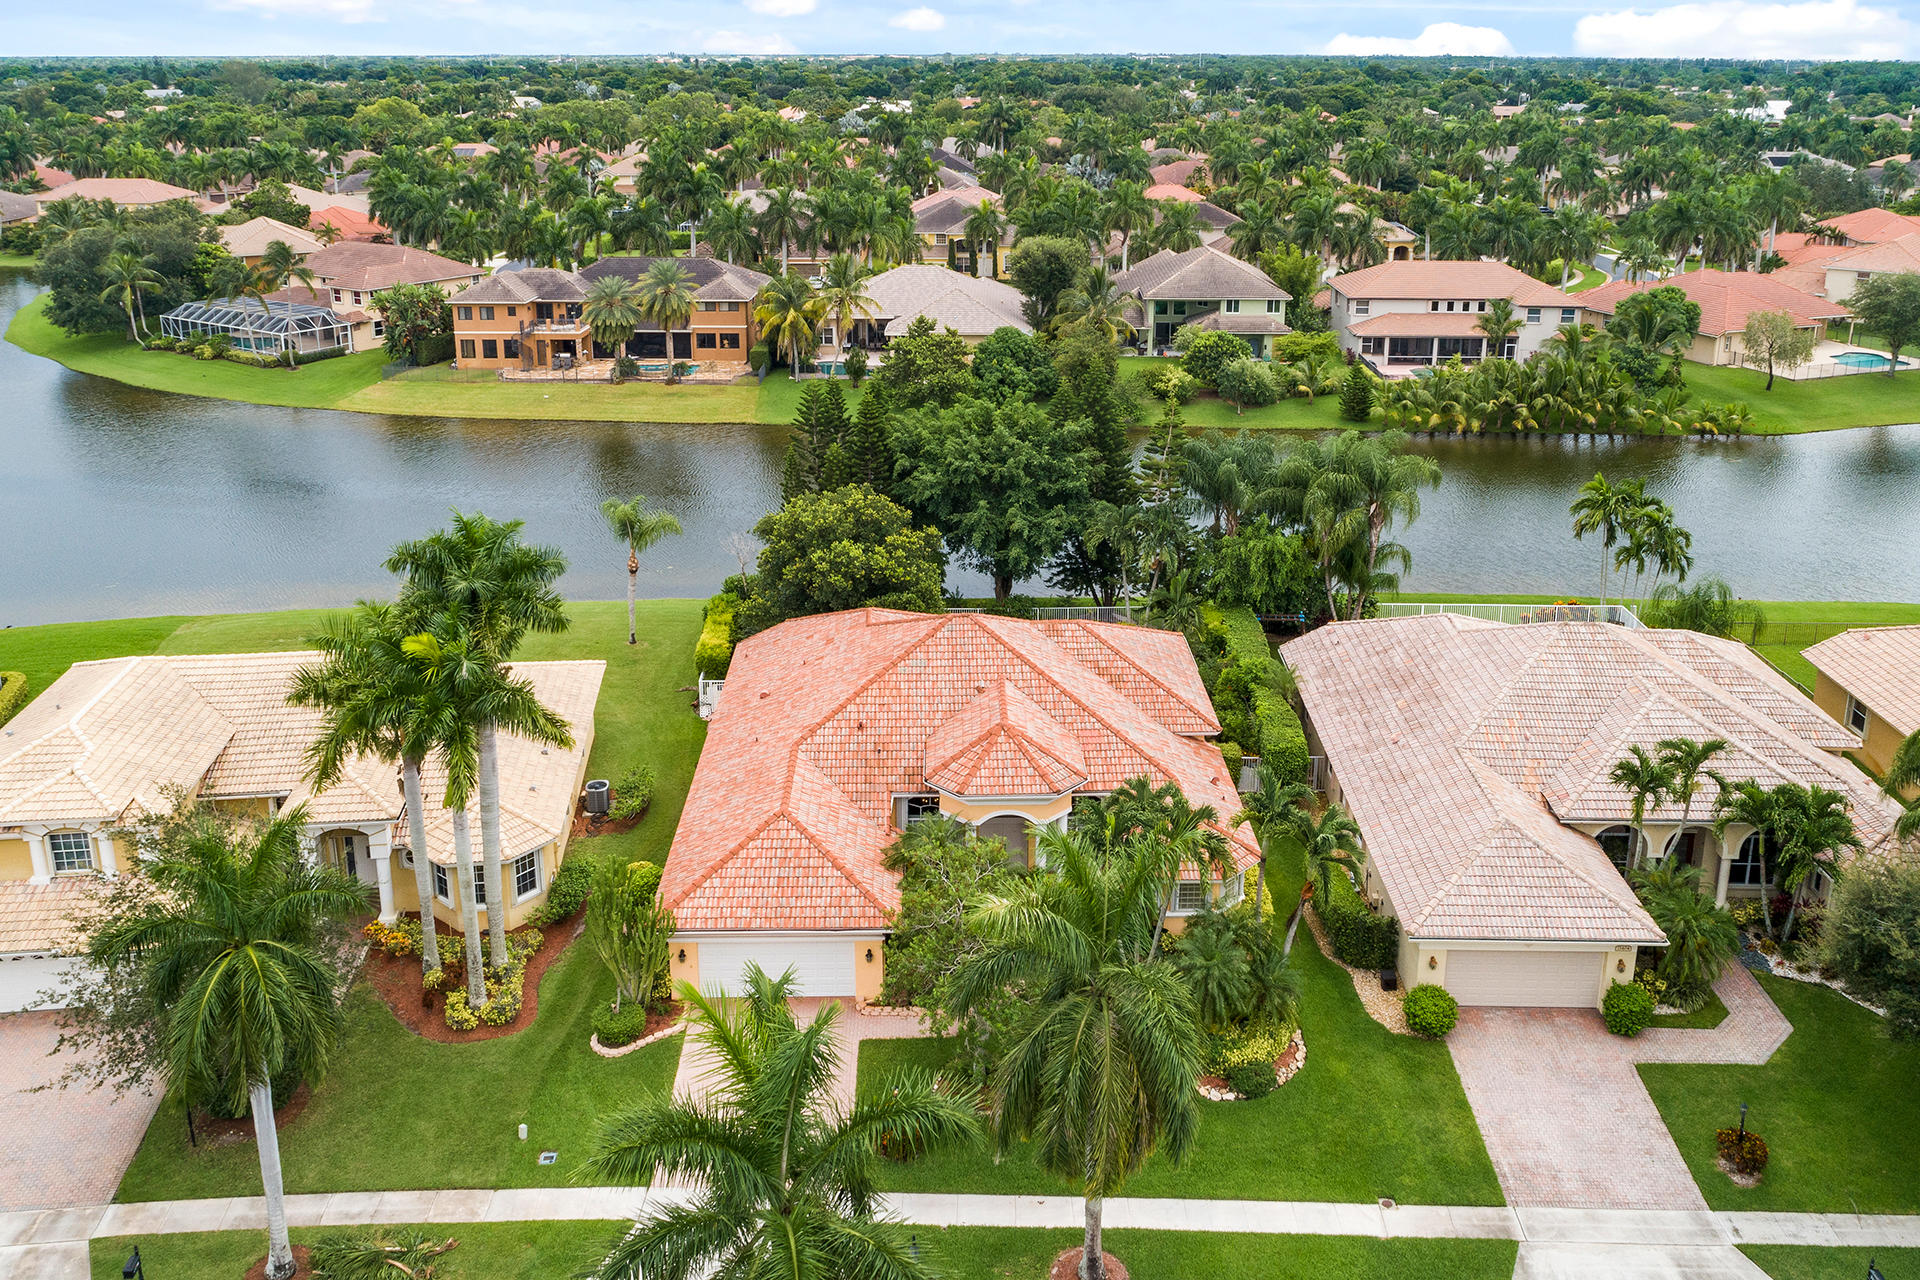 21396 Shannon Ridge Way - Boca Raton, Florida